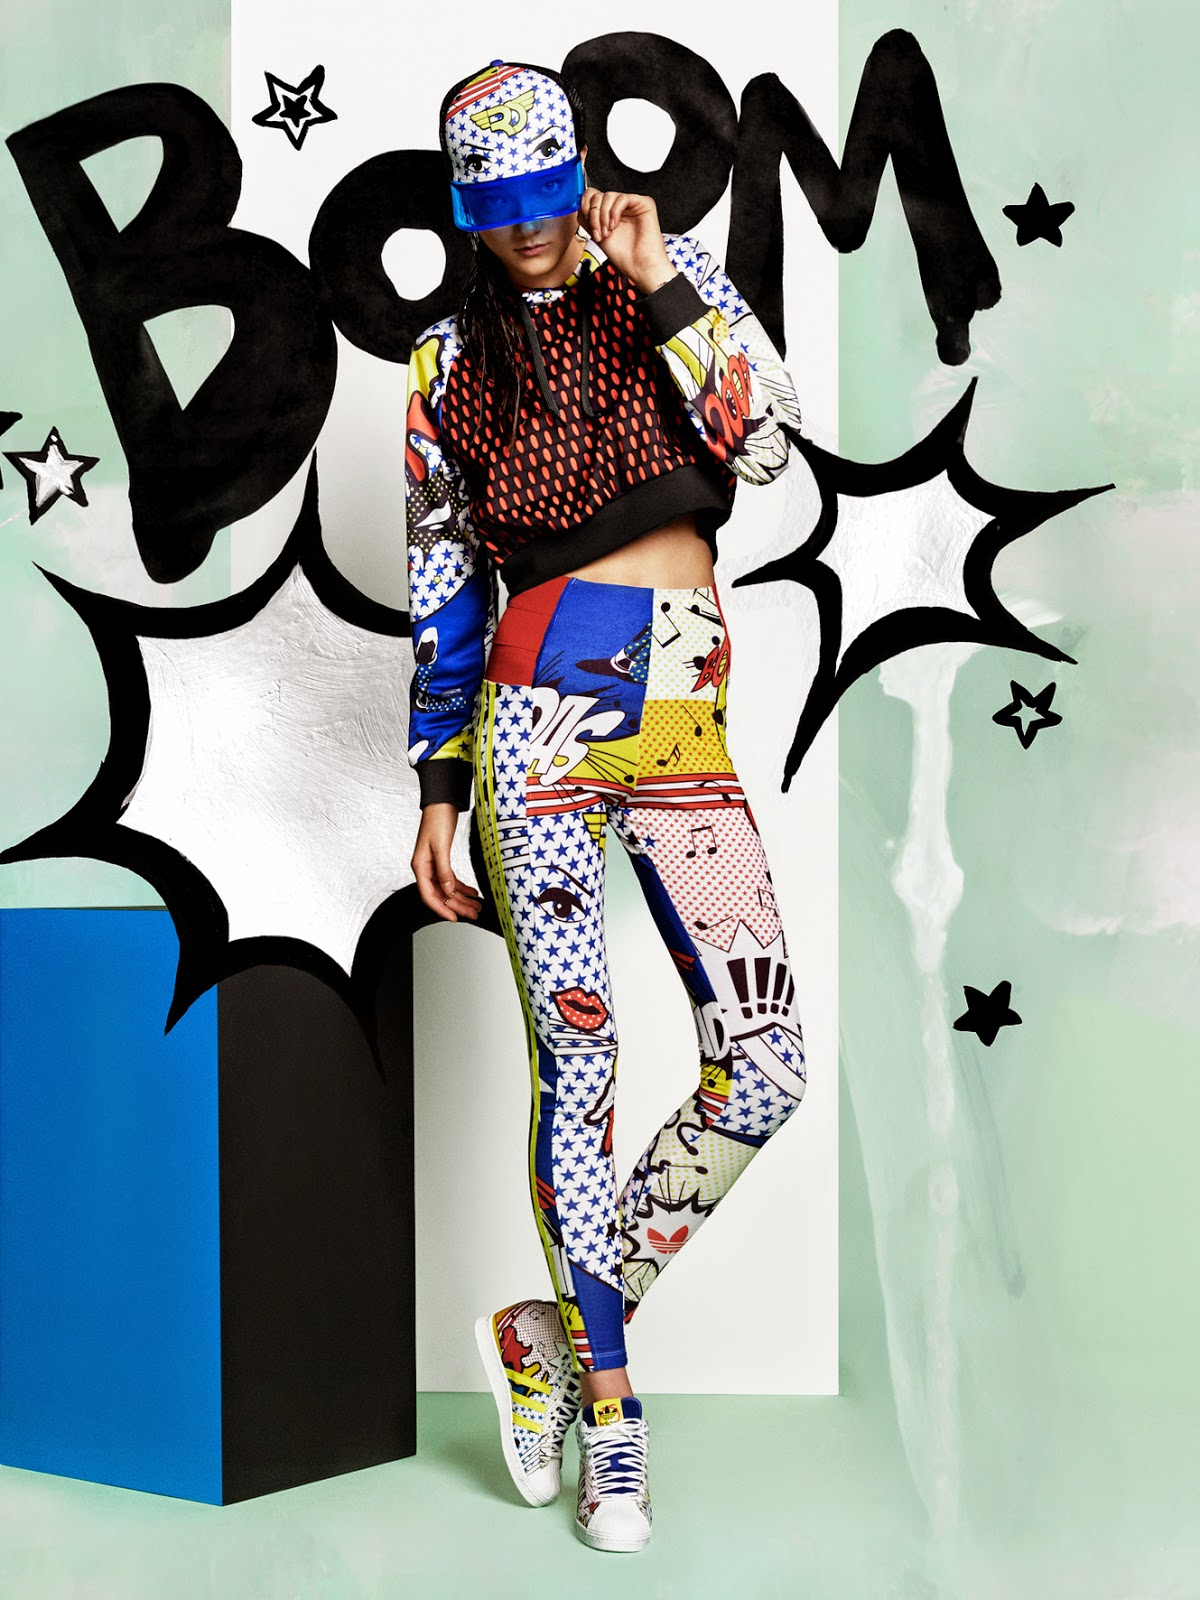 new style 8539b 52b60 The unstoppable rising star, Rita Ora collaborates with adidas Originals in  a bold, brave and technicolour range that packs a punch this season!